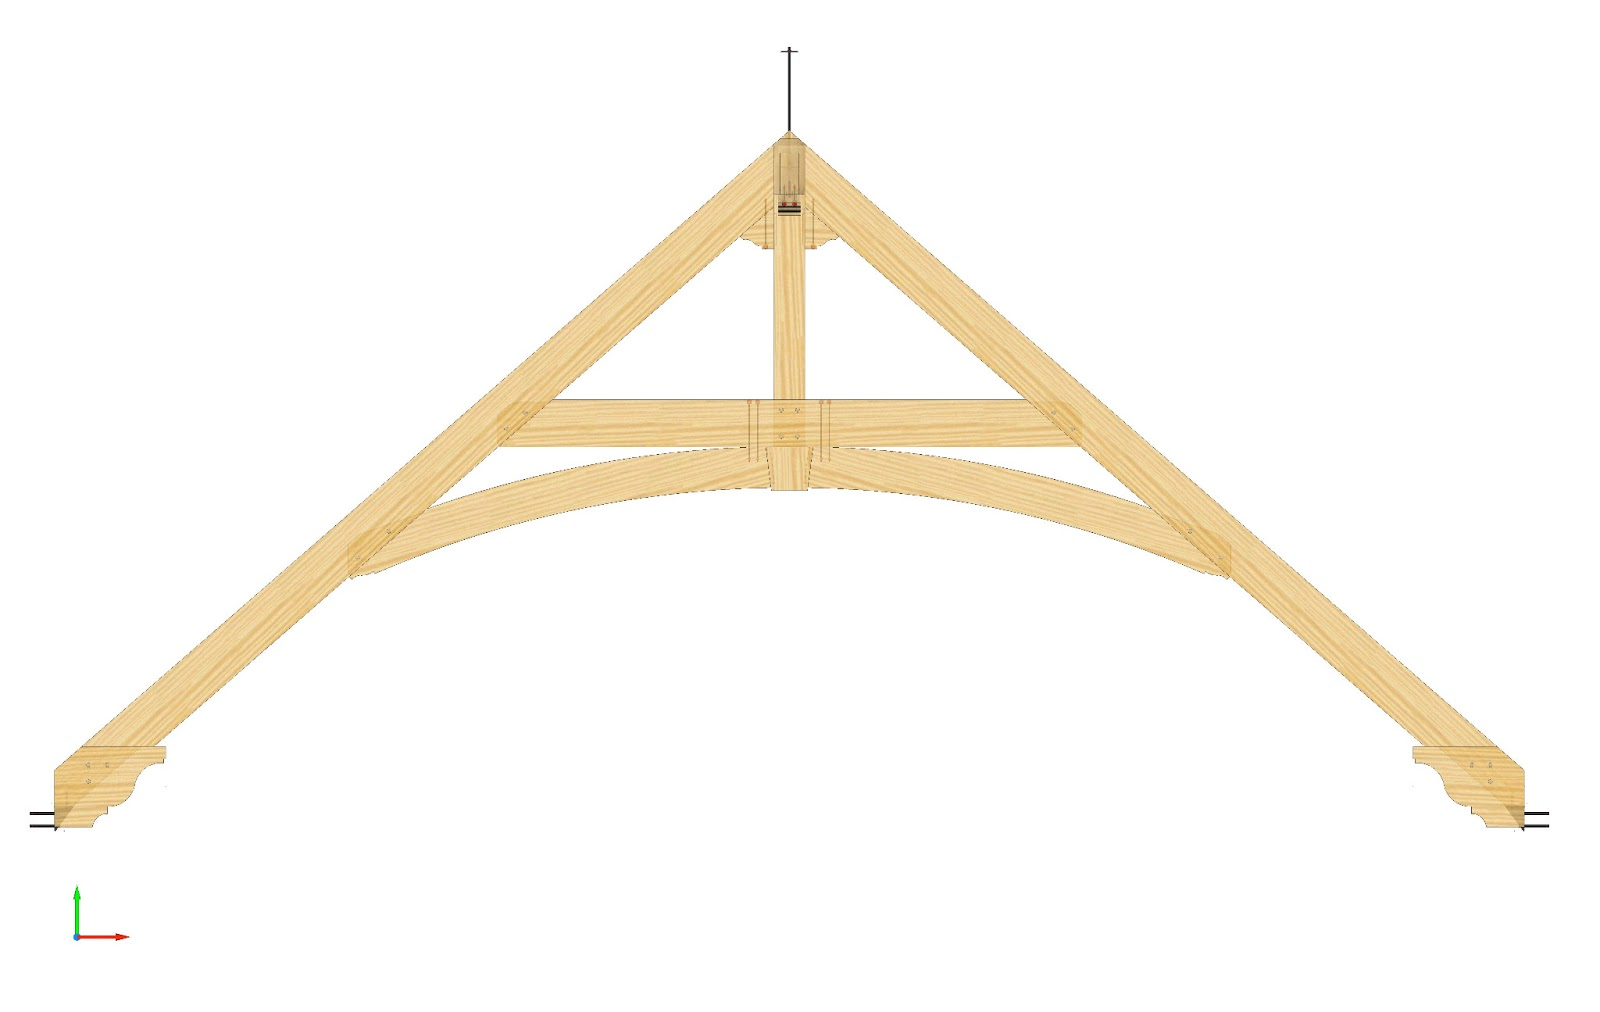 Timber Frame Design: Timber Trusses with Curved Beams